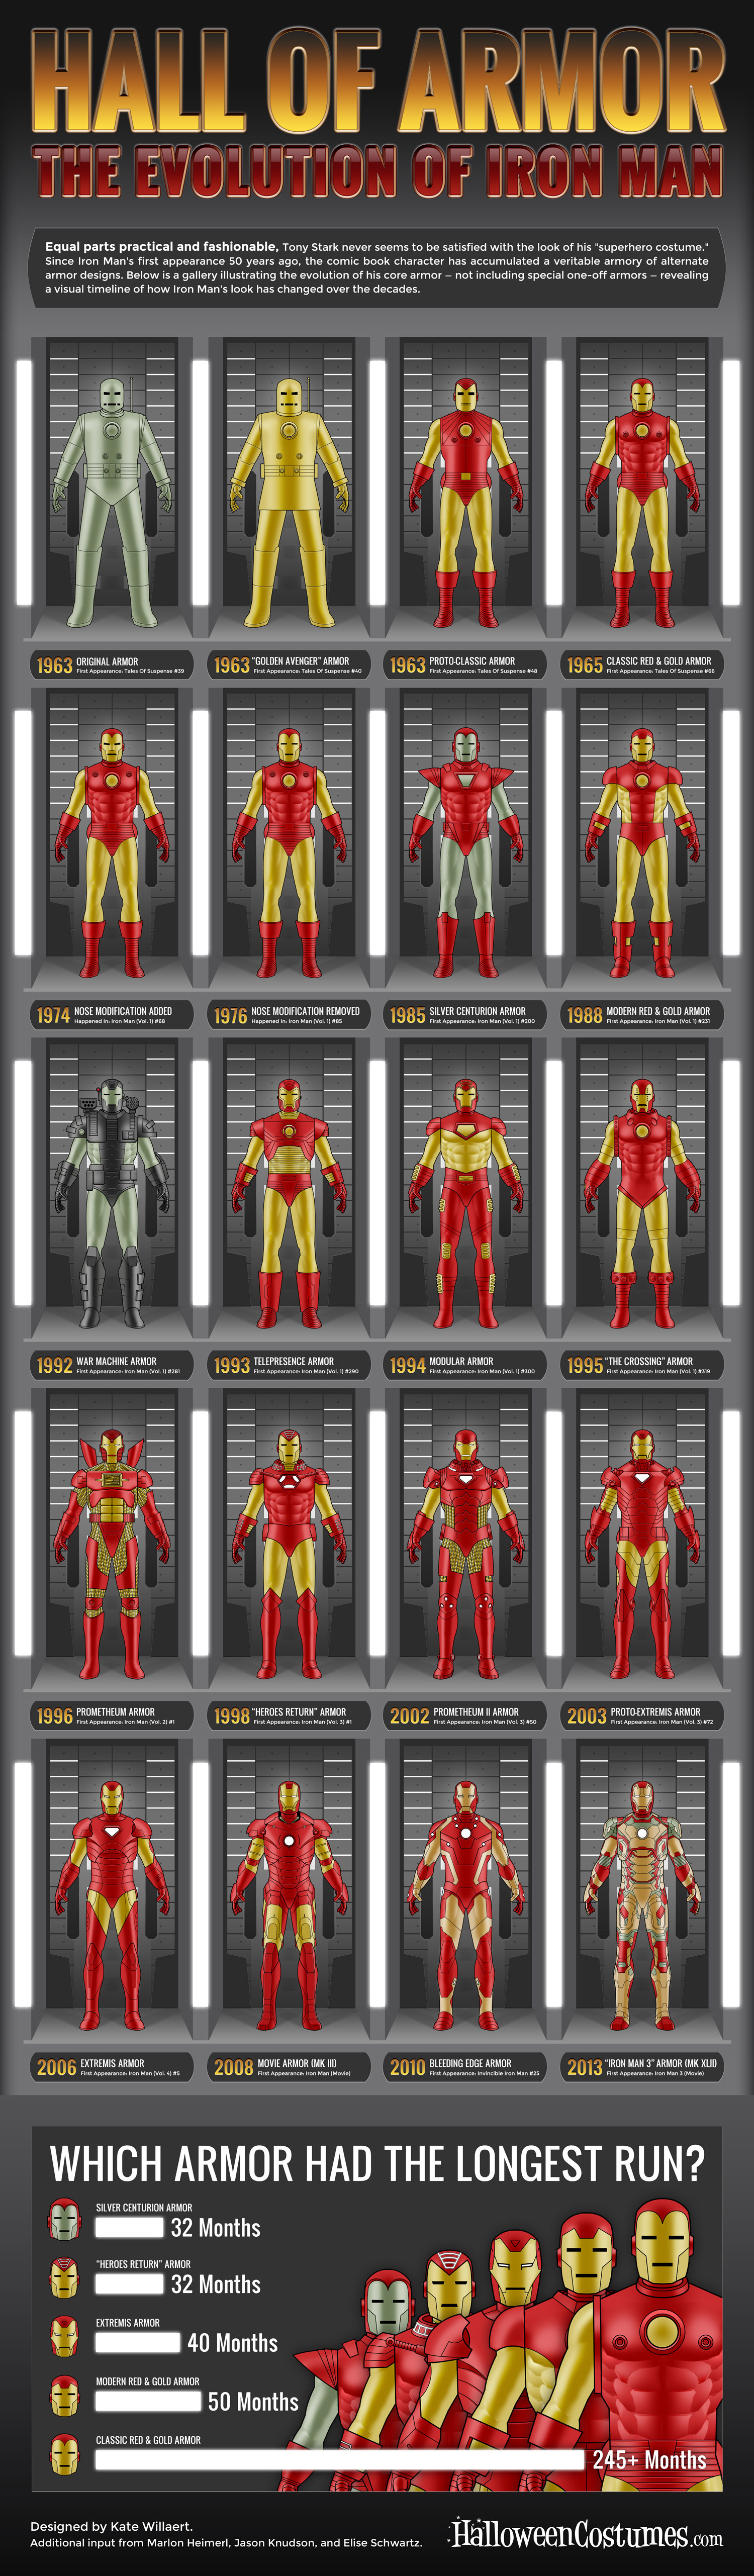 Hall of Armor: The Evolution of Iron Man Infographic